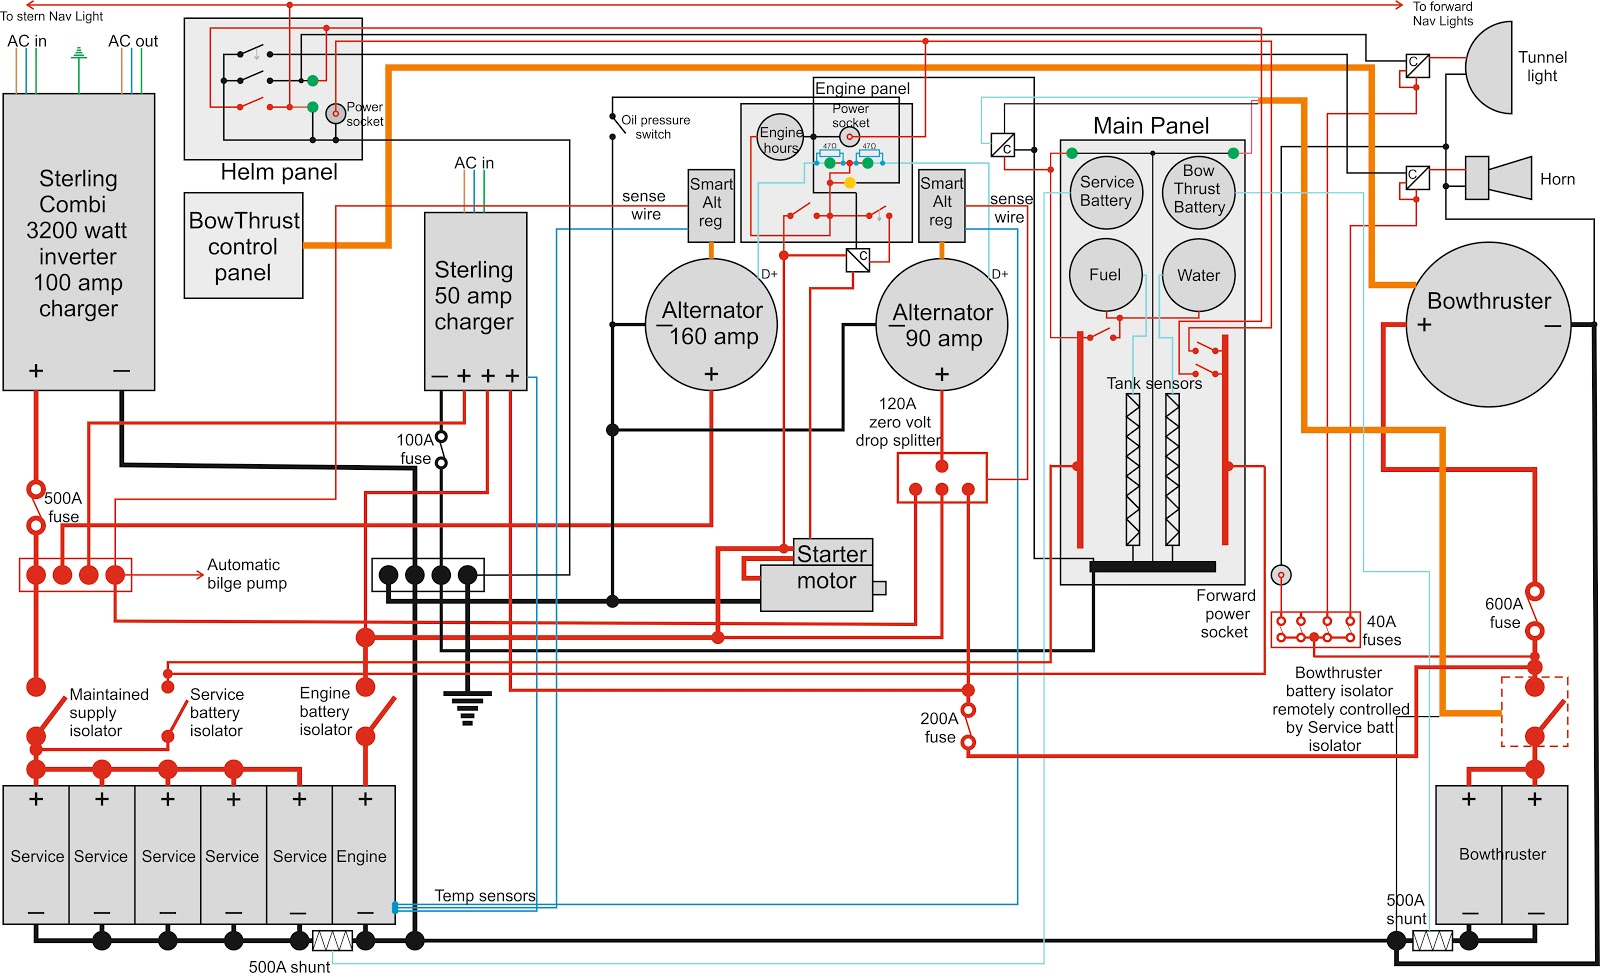 Photos of Underfloor Heating Wiring Diagram Combi Boiler